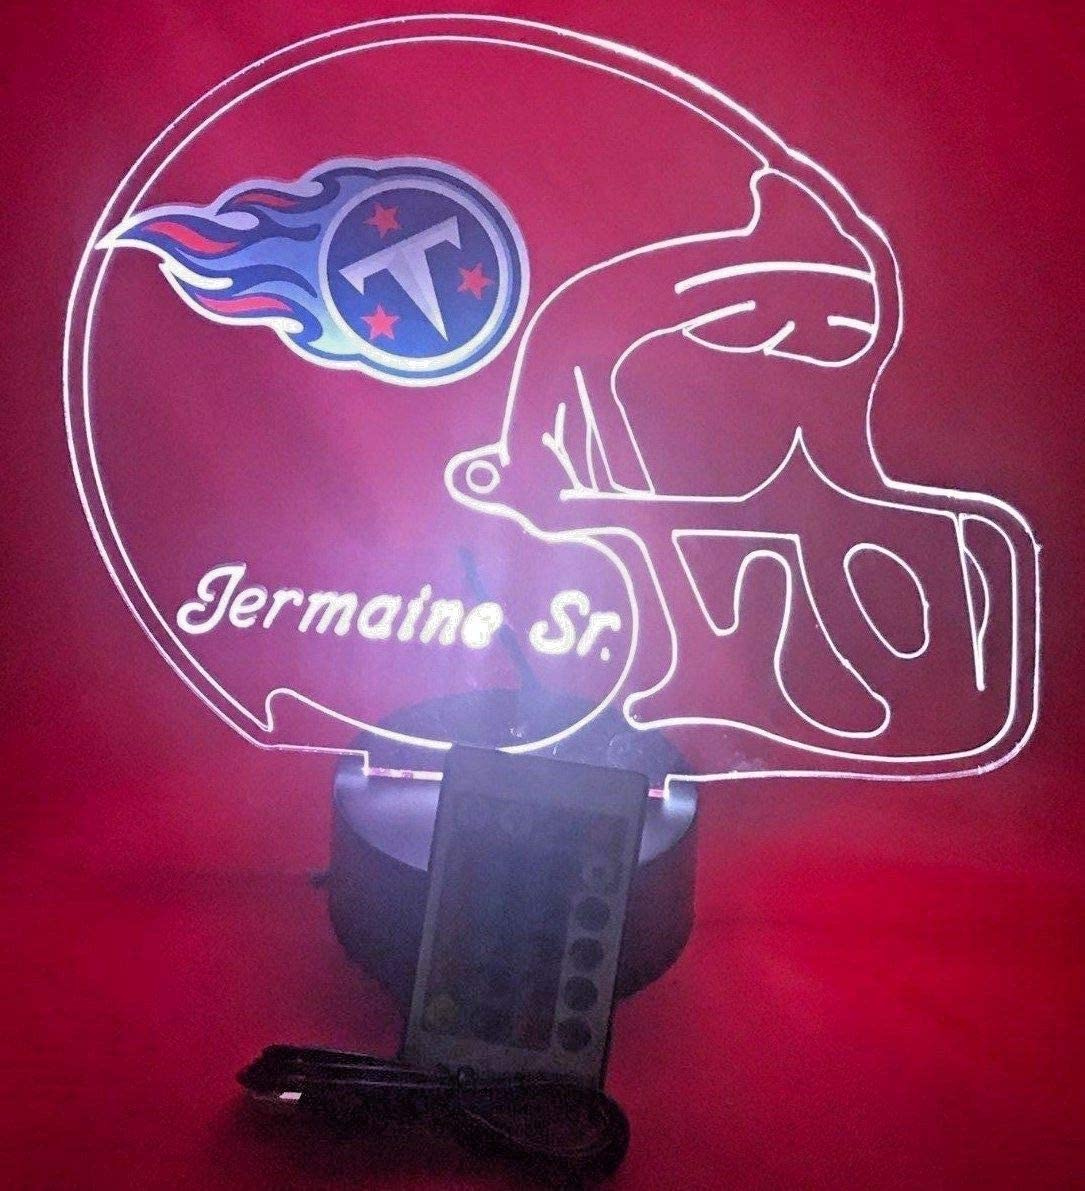 Tennessee Titans NFL Light Up Lamp LED Personalized Free Football Light Up Light Lamp LED Table Lamp, Our Newest Feature – It s Wow, with Remote, 16 Color Options, Dimmer, Free Engraved, Great Gift